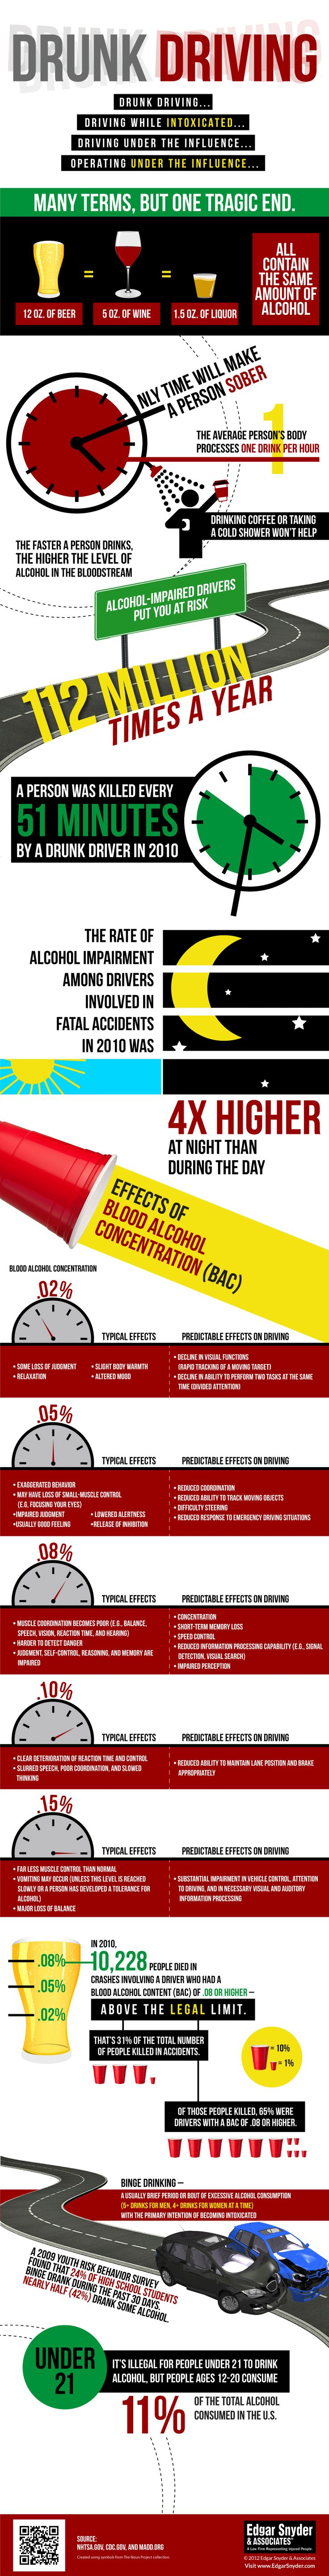 Drunk Driving Infographic - Information on drunk driving, underage drinking, and more.